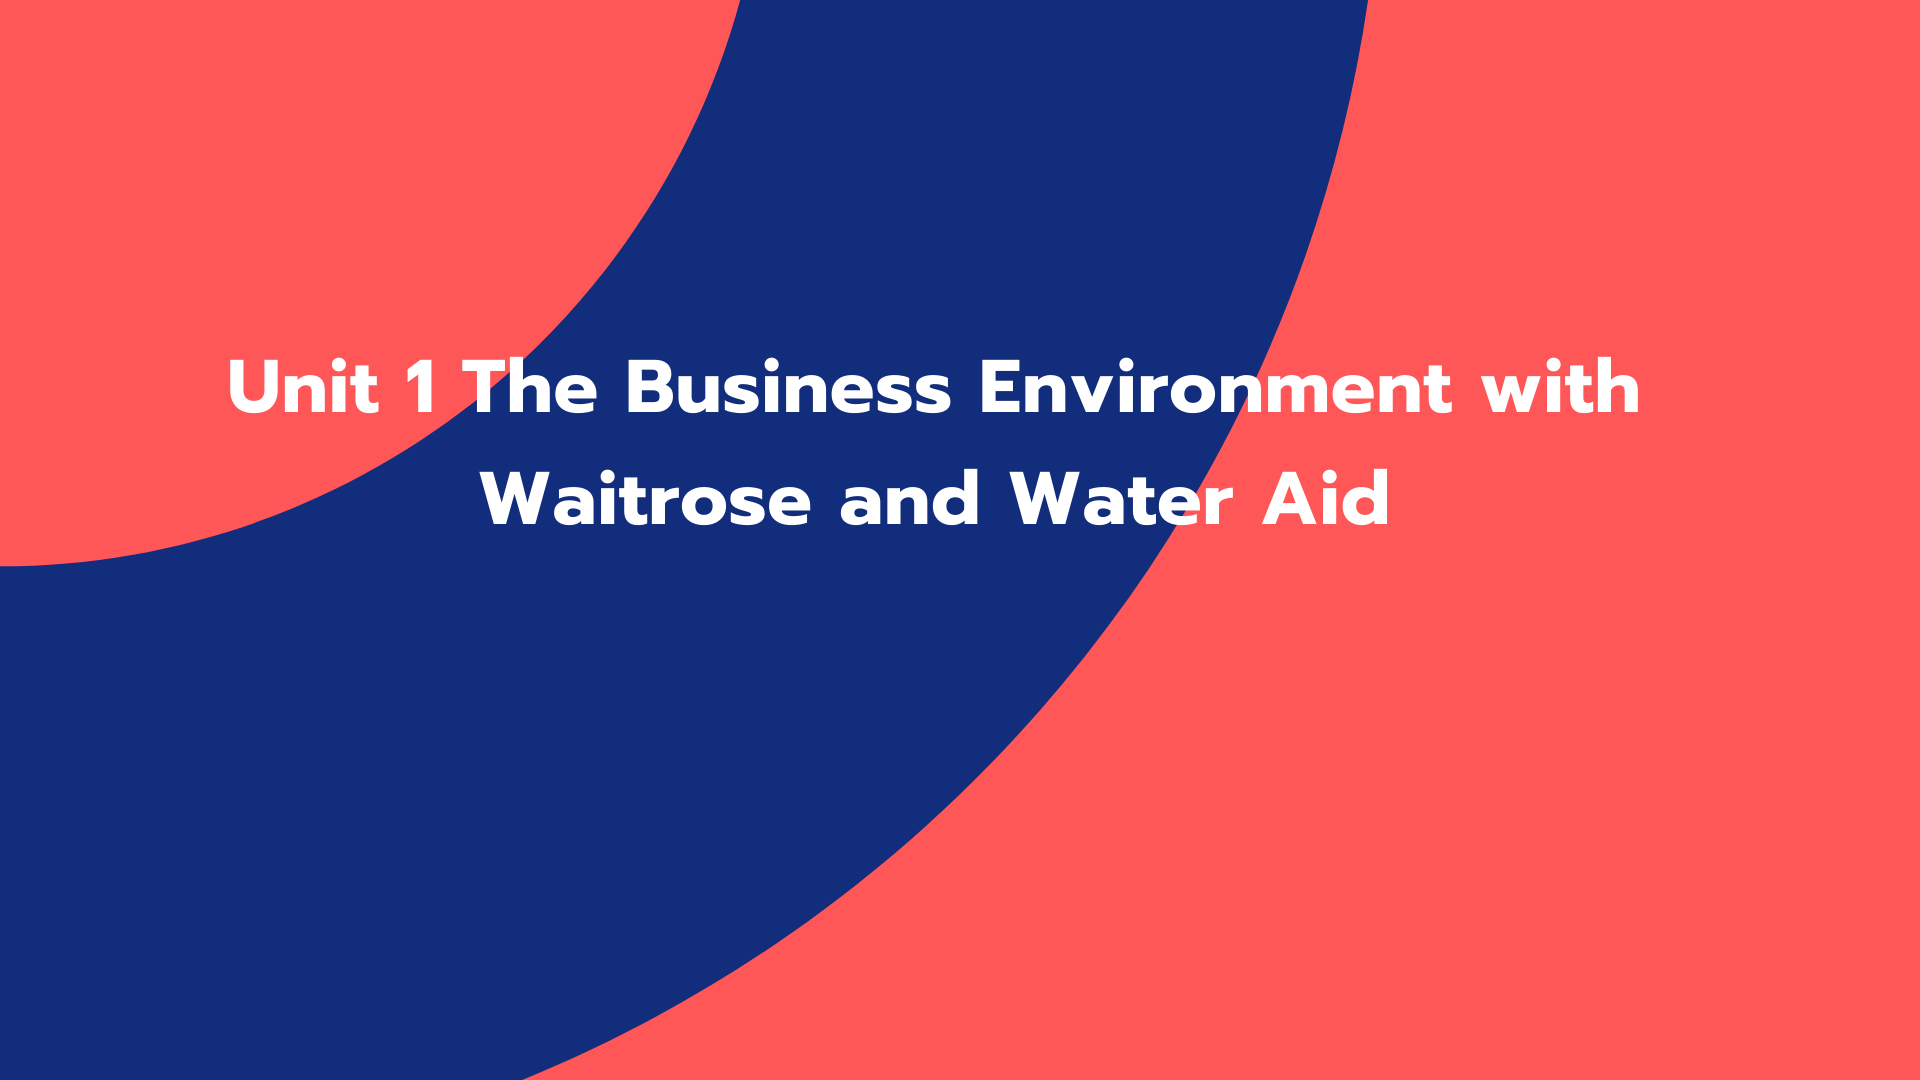 Unit 1 The Business Environment with Waitrose and Water Aid